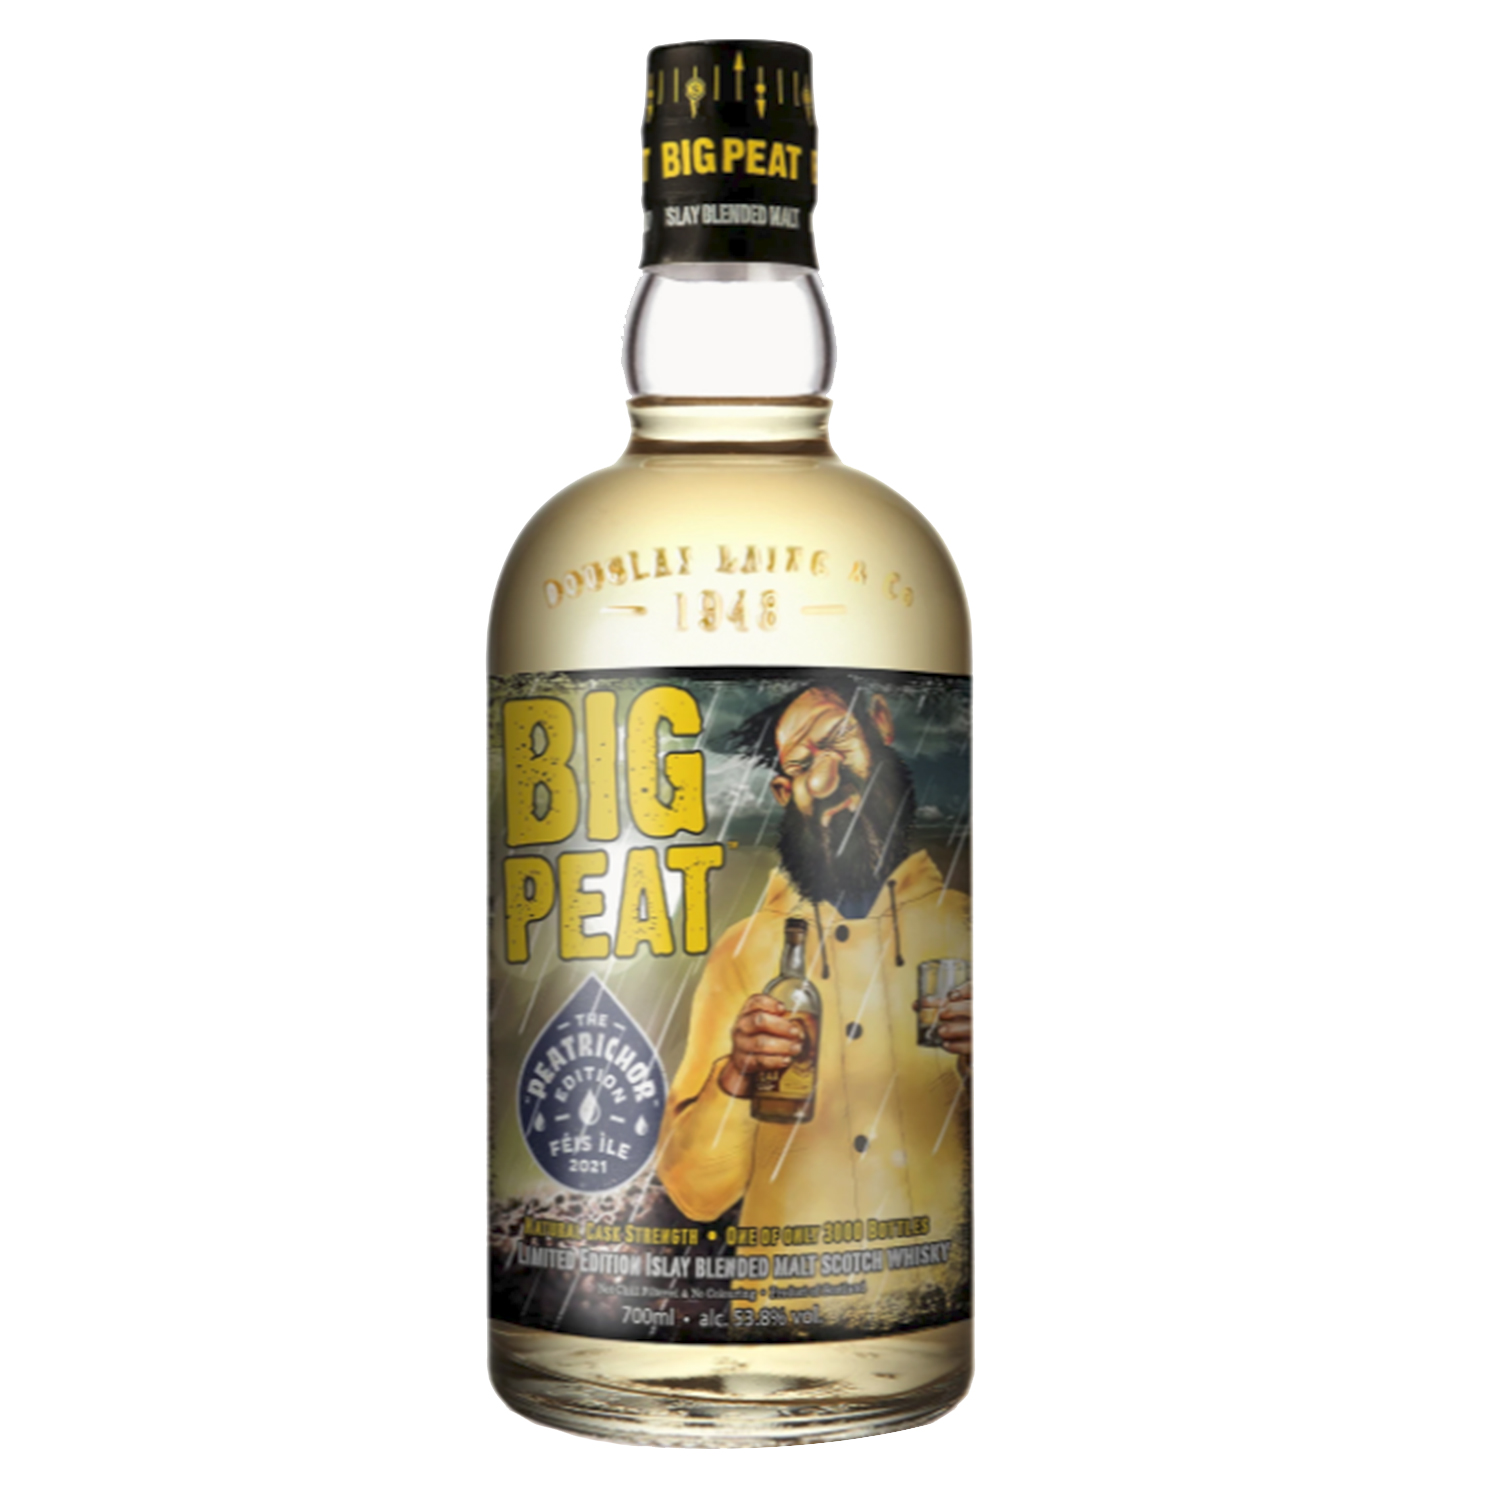 Whisky - Big Peat - Peatrichor - Peated - Blend - 70cl - 53,8°